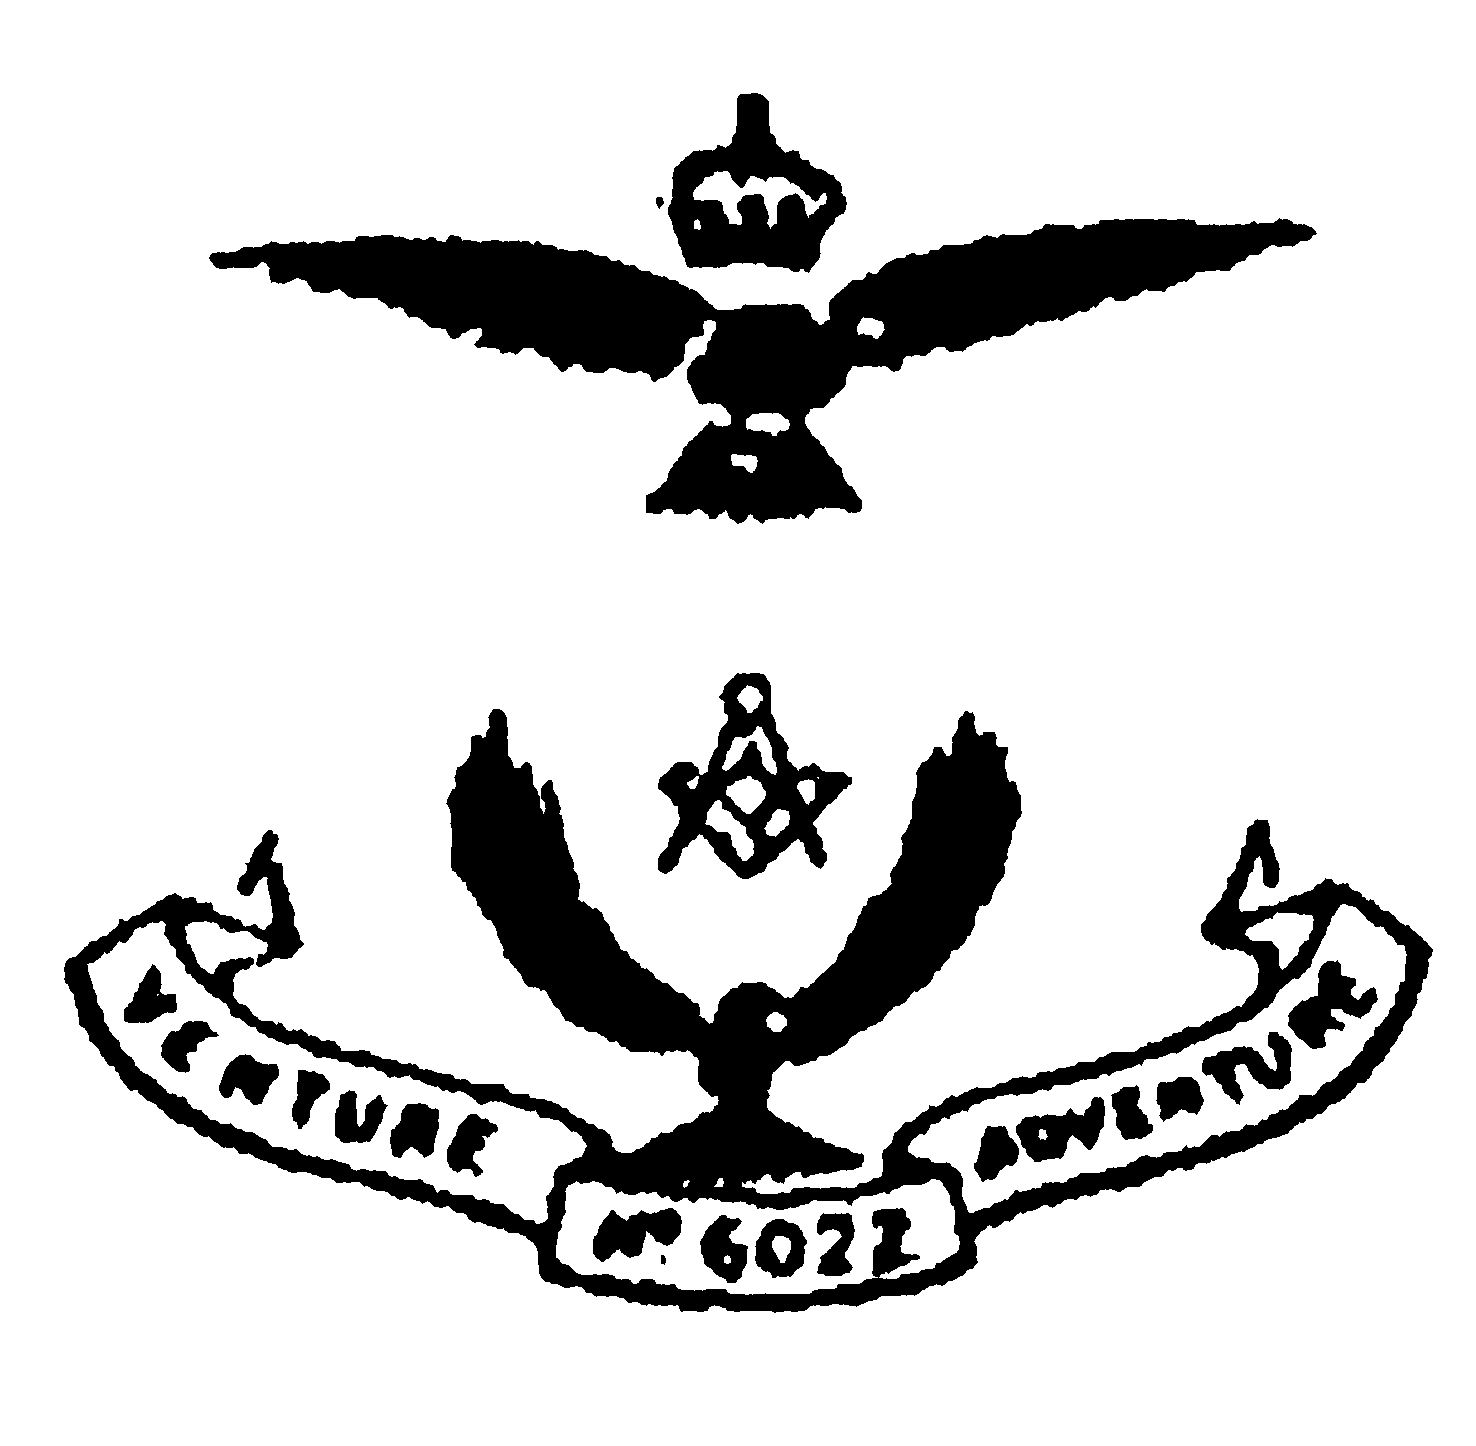 Circuit Of Service Lodges